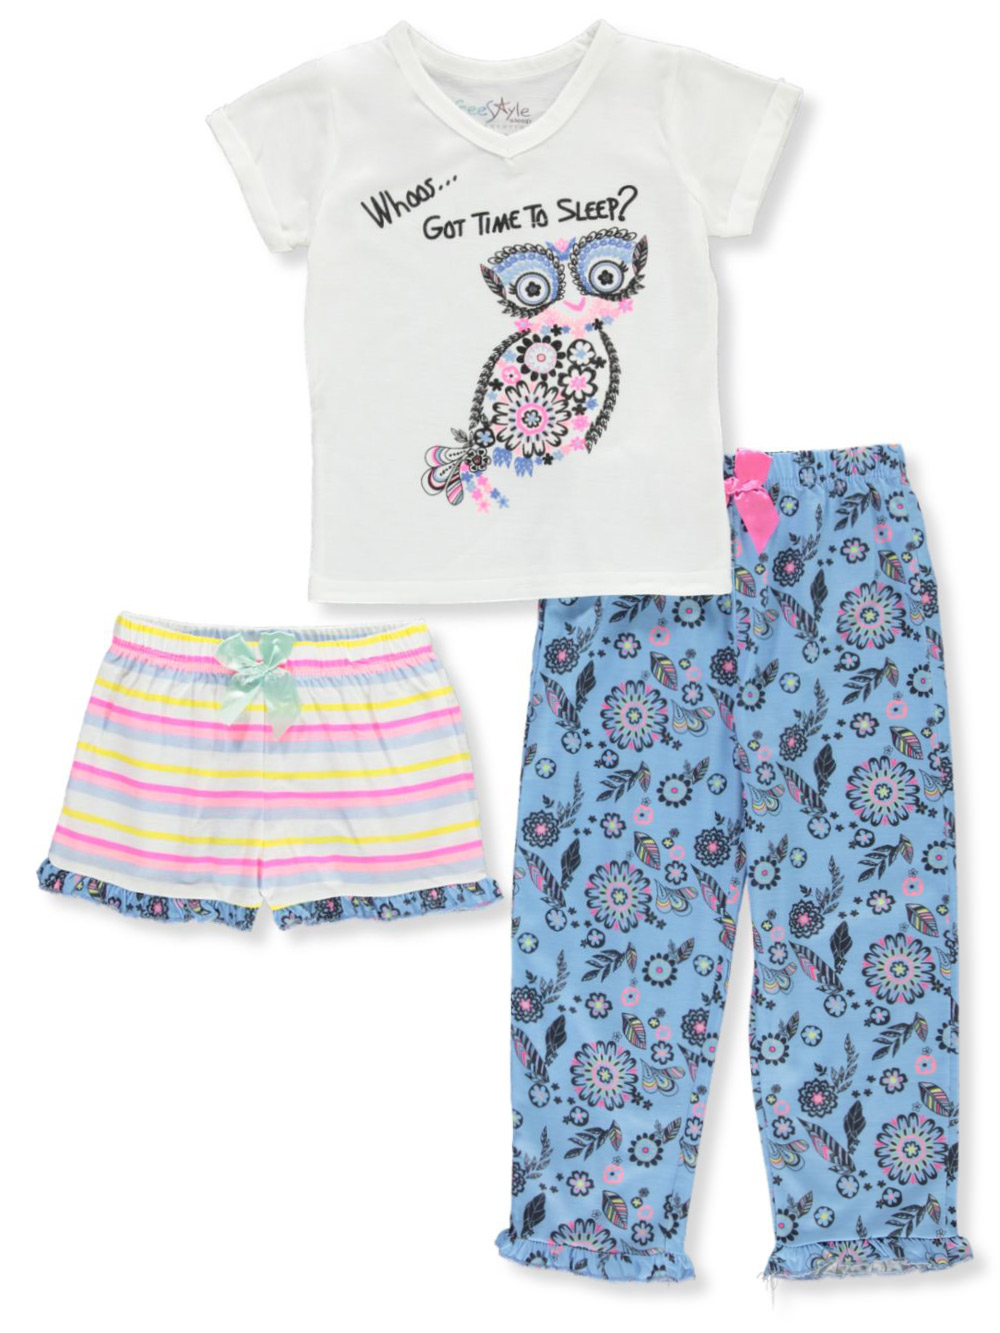 Freestyle Revolution Pajamas